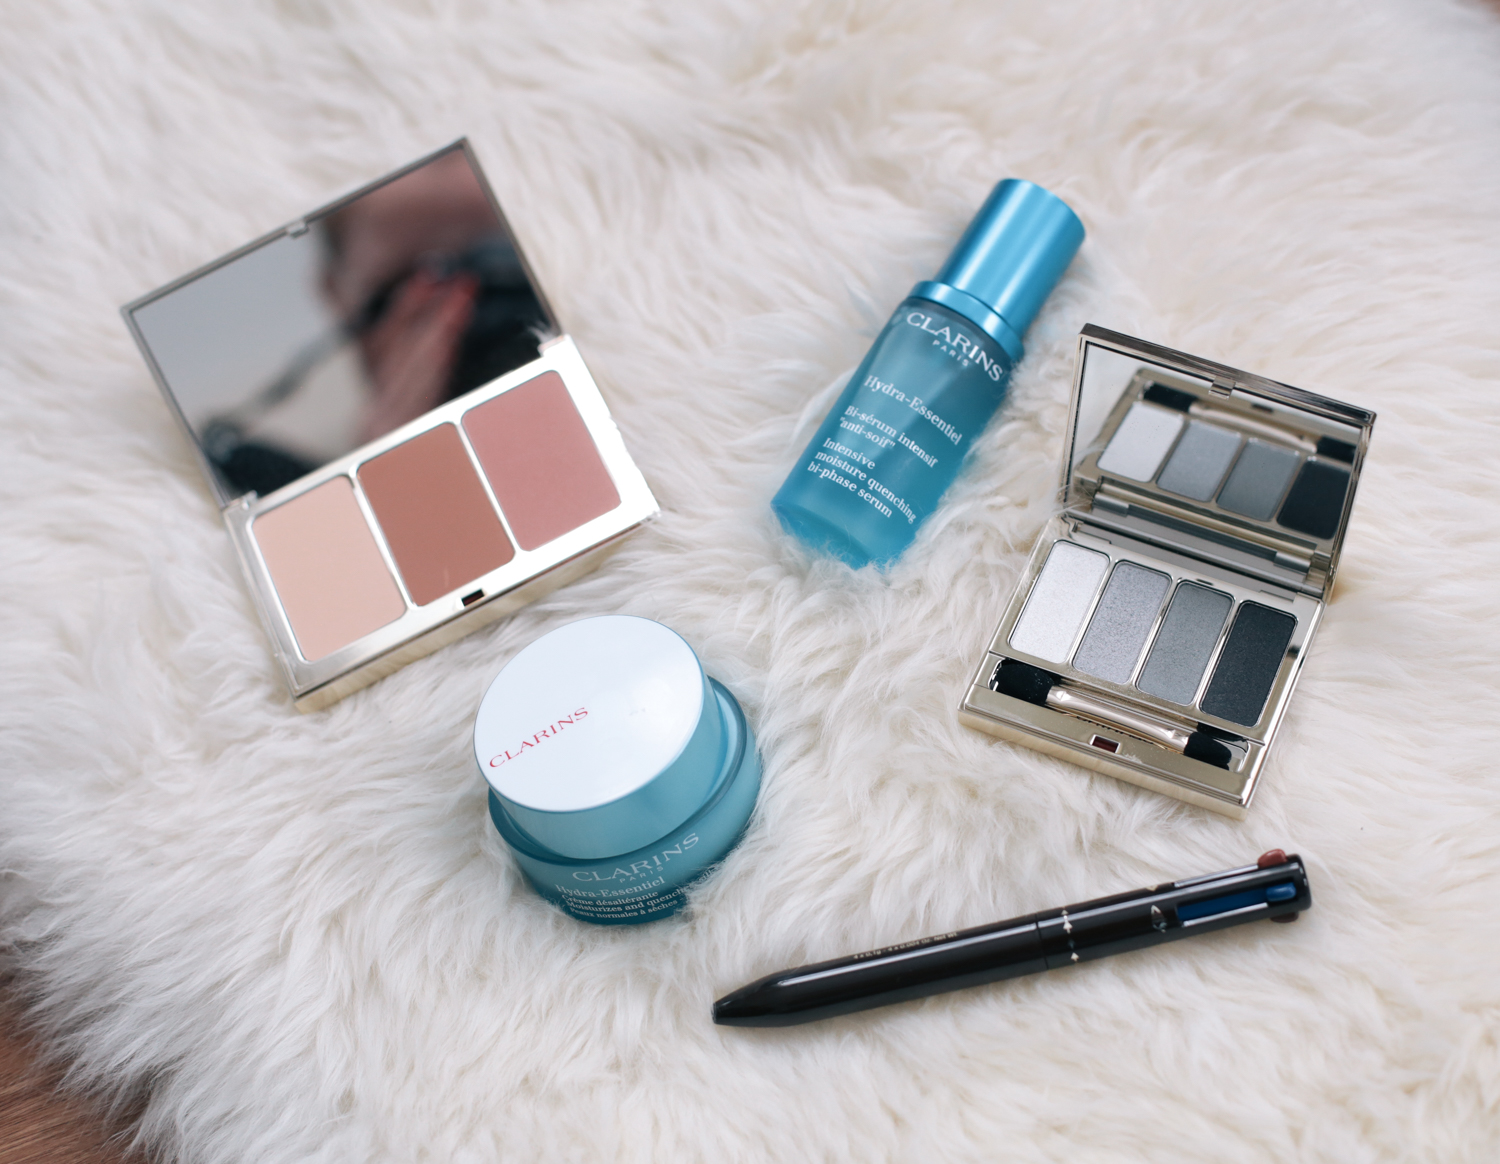 clarins spring 2017 products (5 of 8)